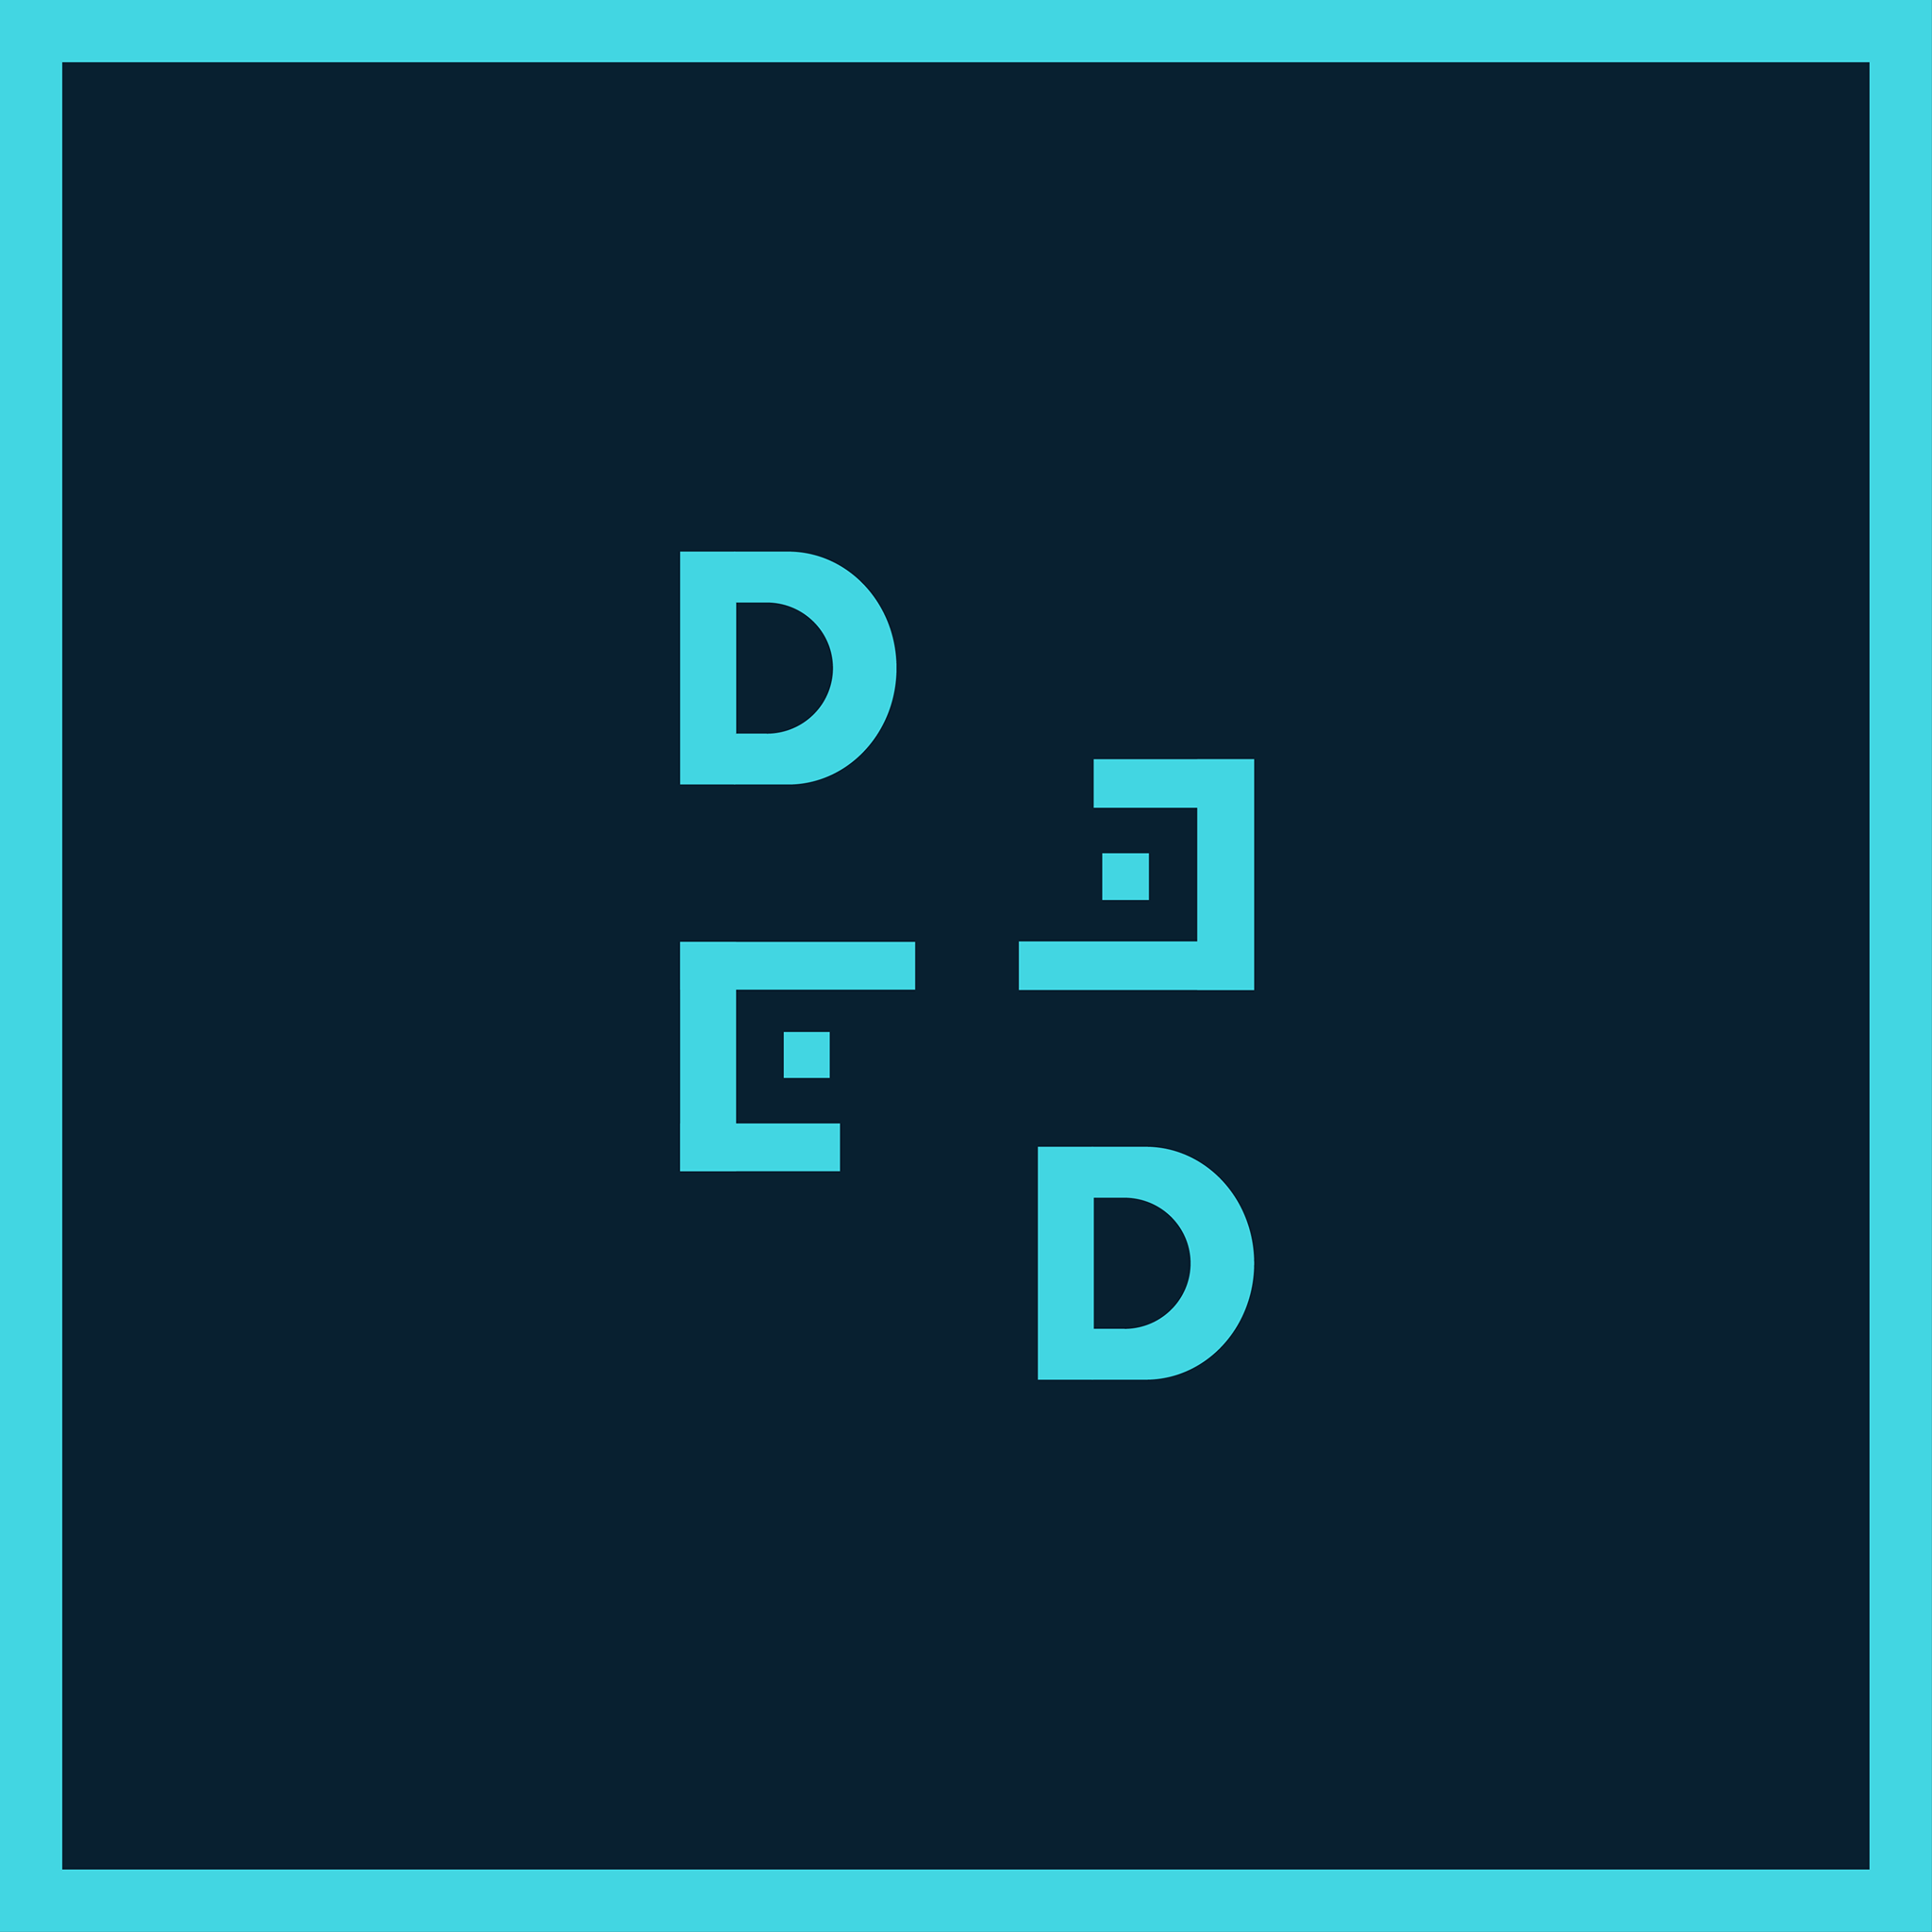 DEED, an app created by  CAS alum Deevee Kashi and Anthony Yoon, uses location services to suggest nearby organizations for volunteering opportunities.